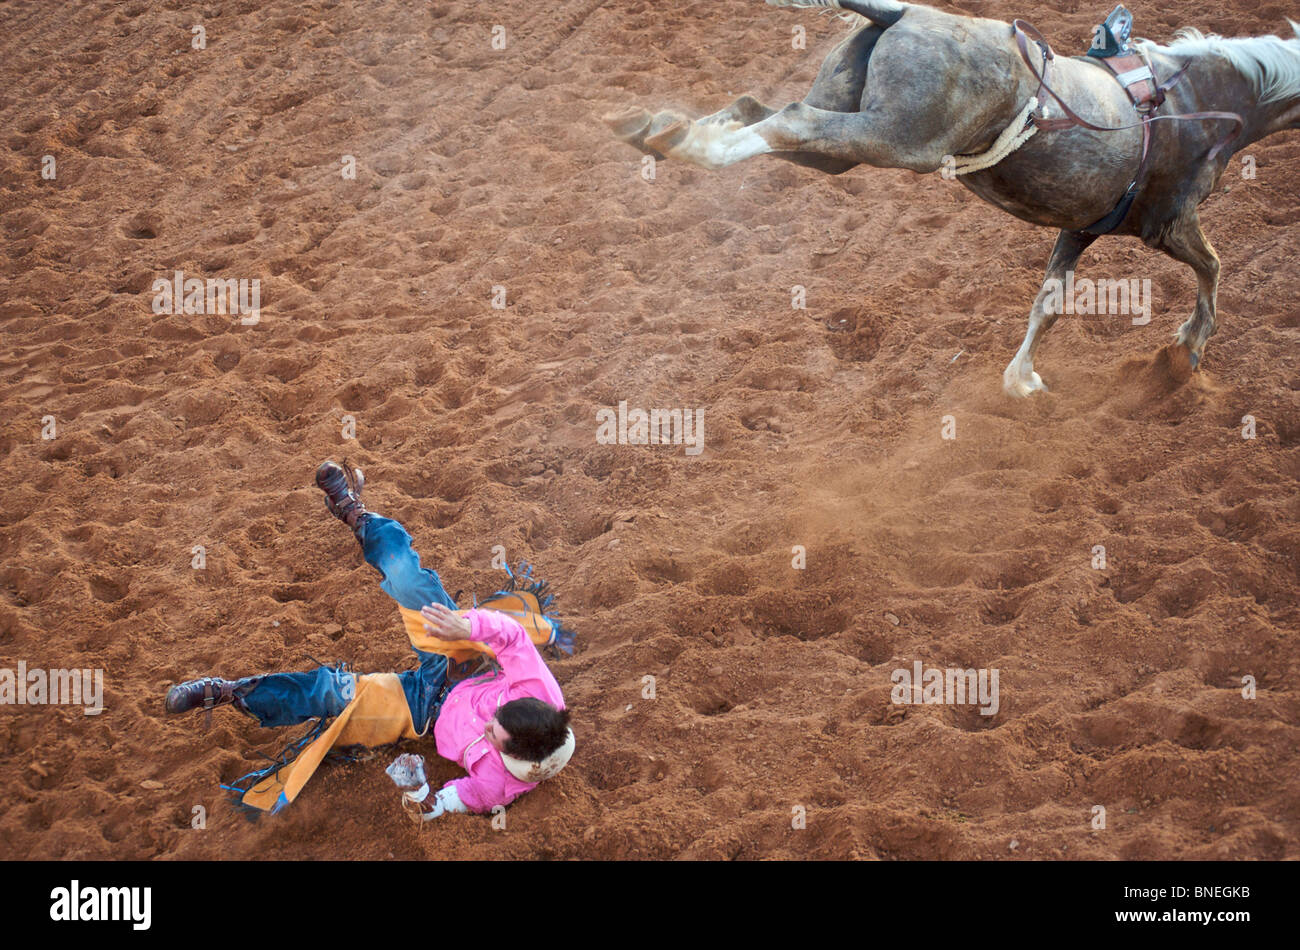 Rodeo cowboy member of PRCA fallen down from back Of horseIn Smalltown Bridgeport Texas, USA Stock Photo